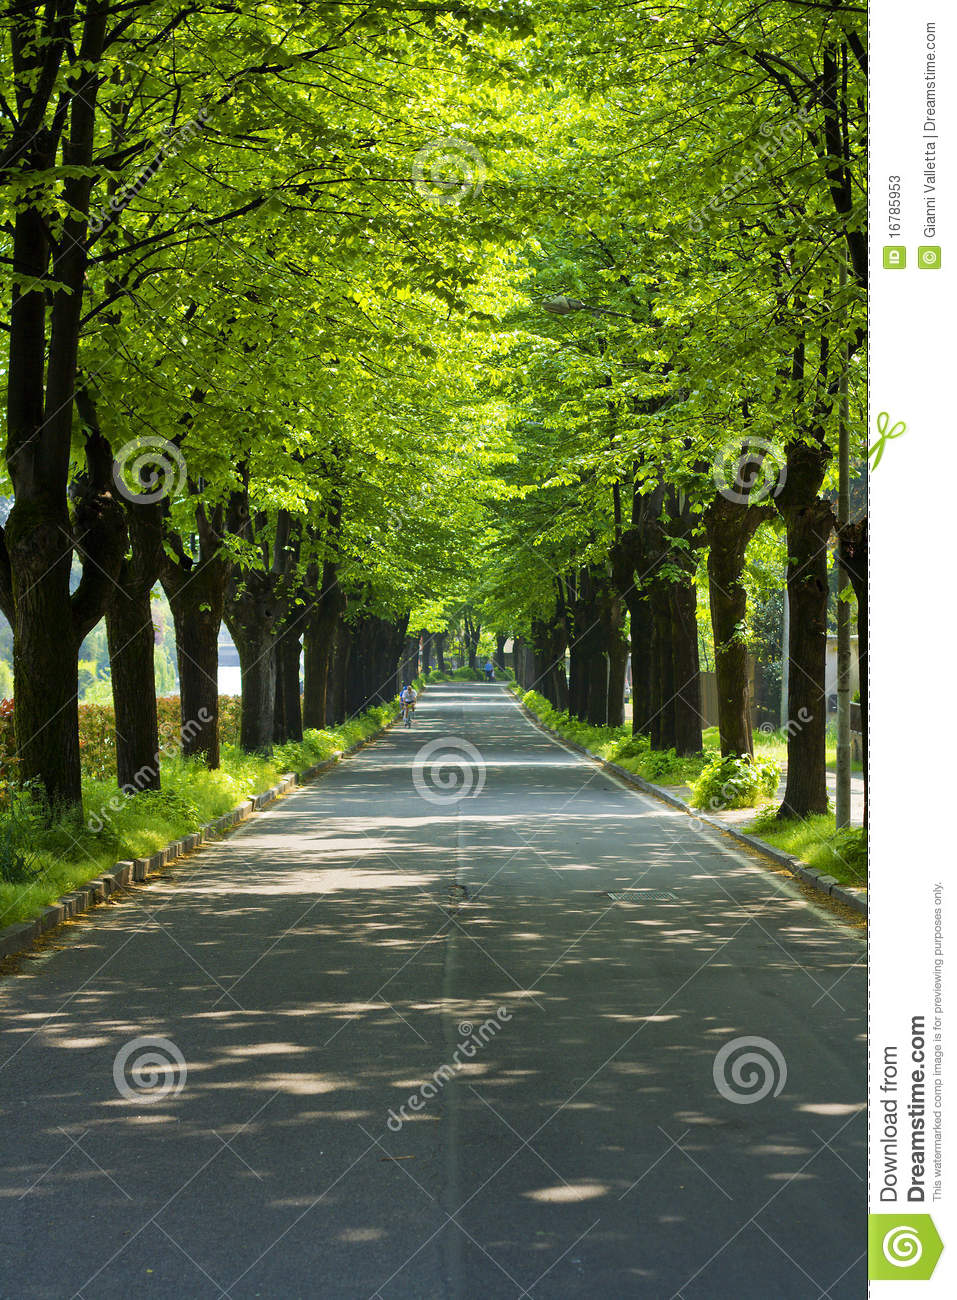 Road In A Park With Row Of Trees Stock Photos